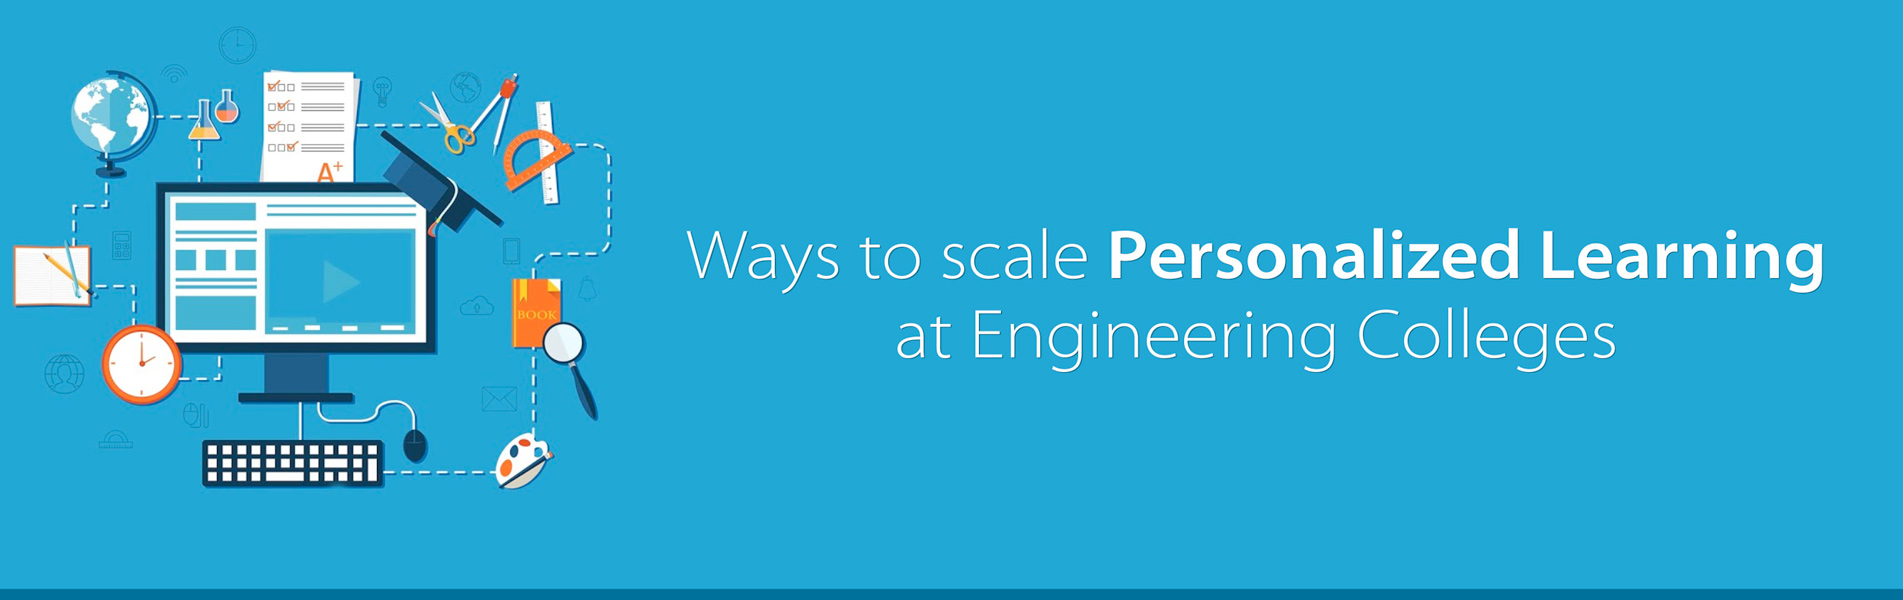 Ways-to-scale-personalized-learning-at-Engineering-Colleges